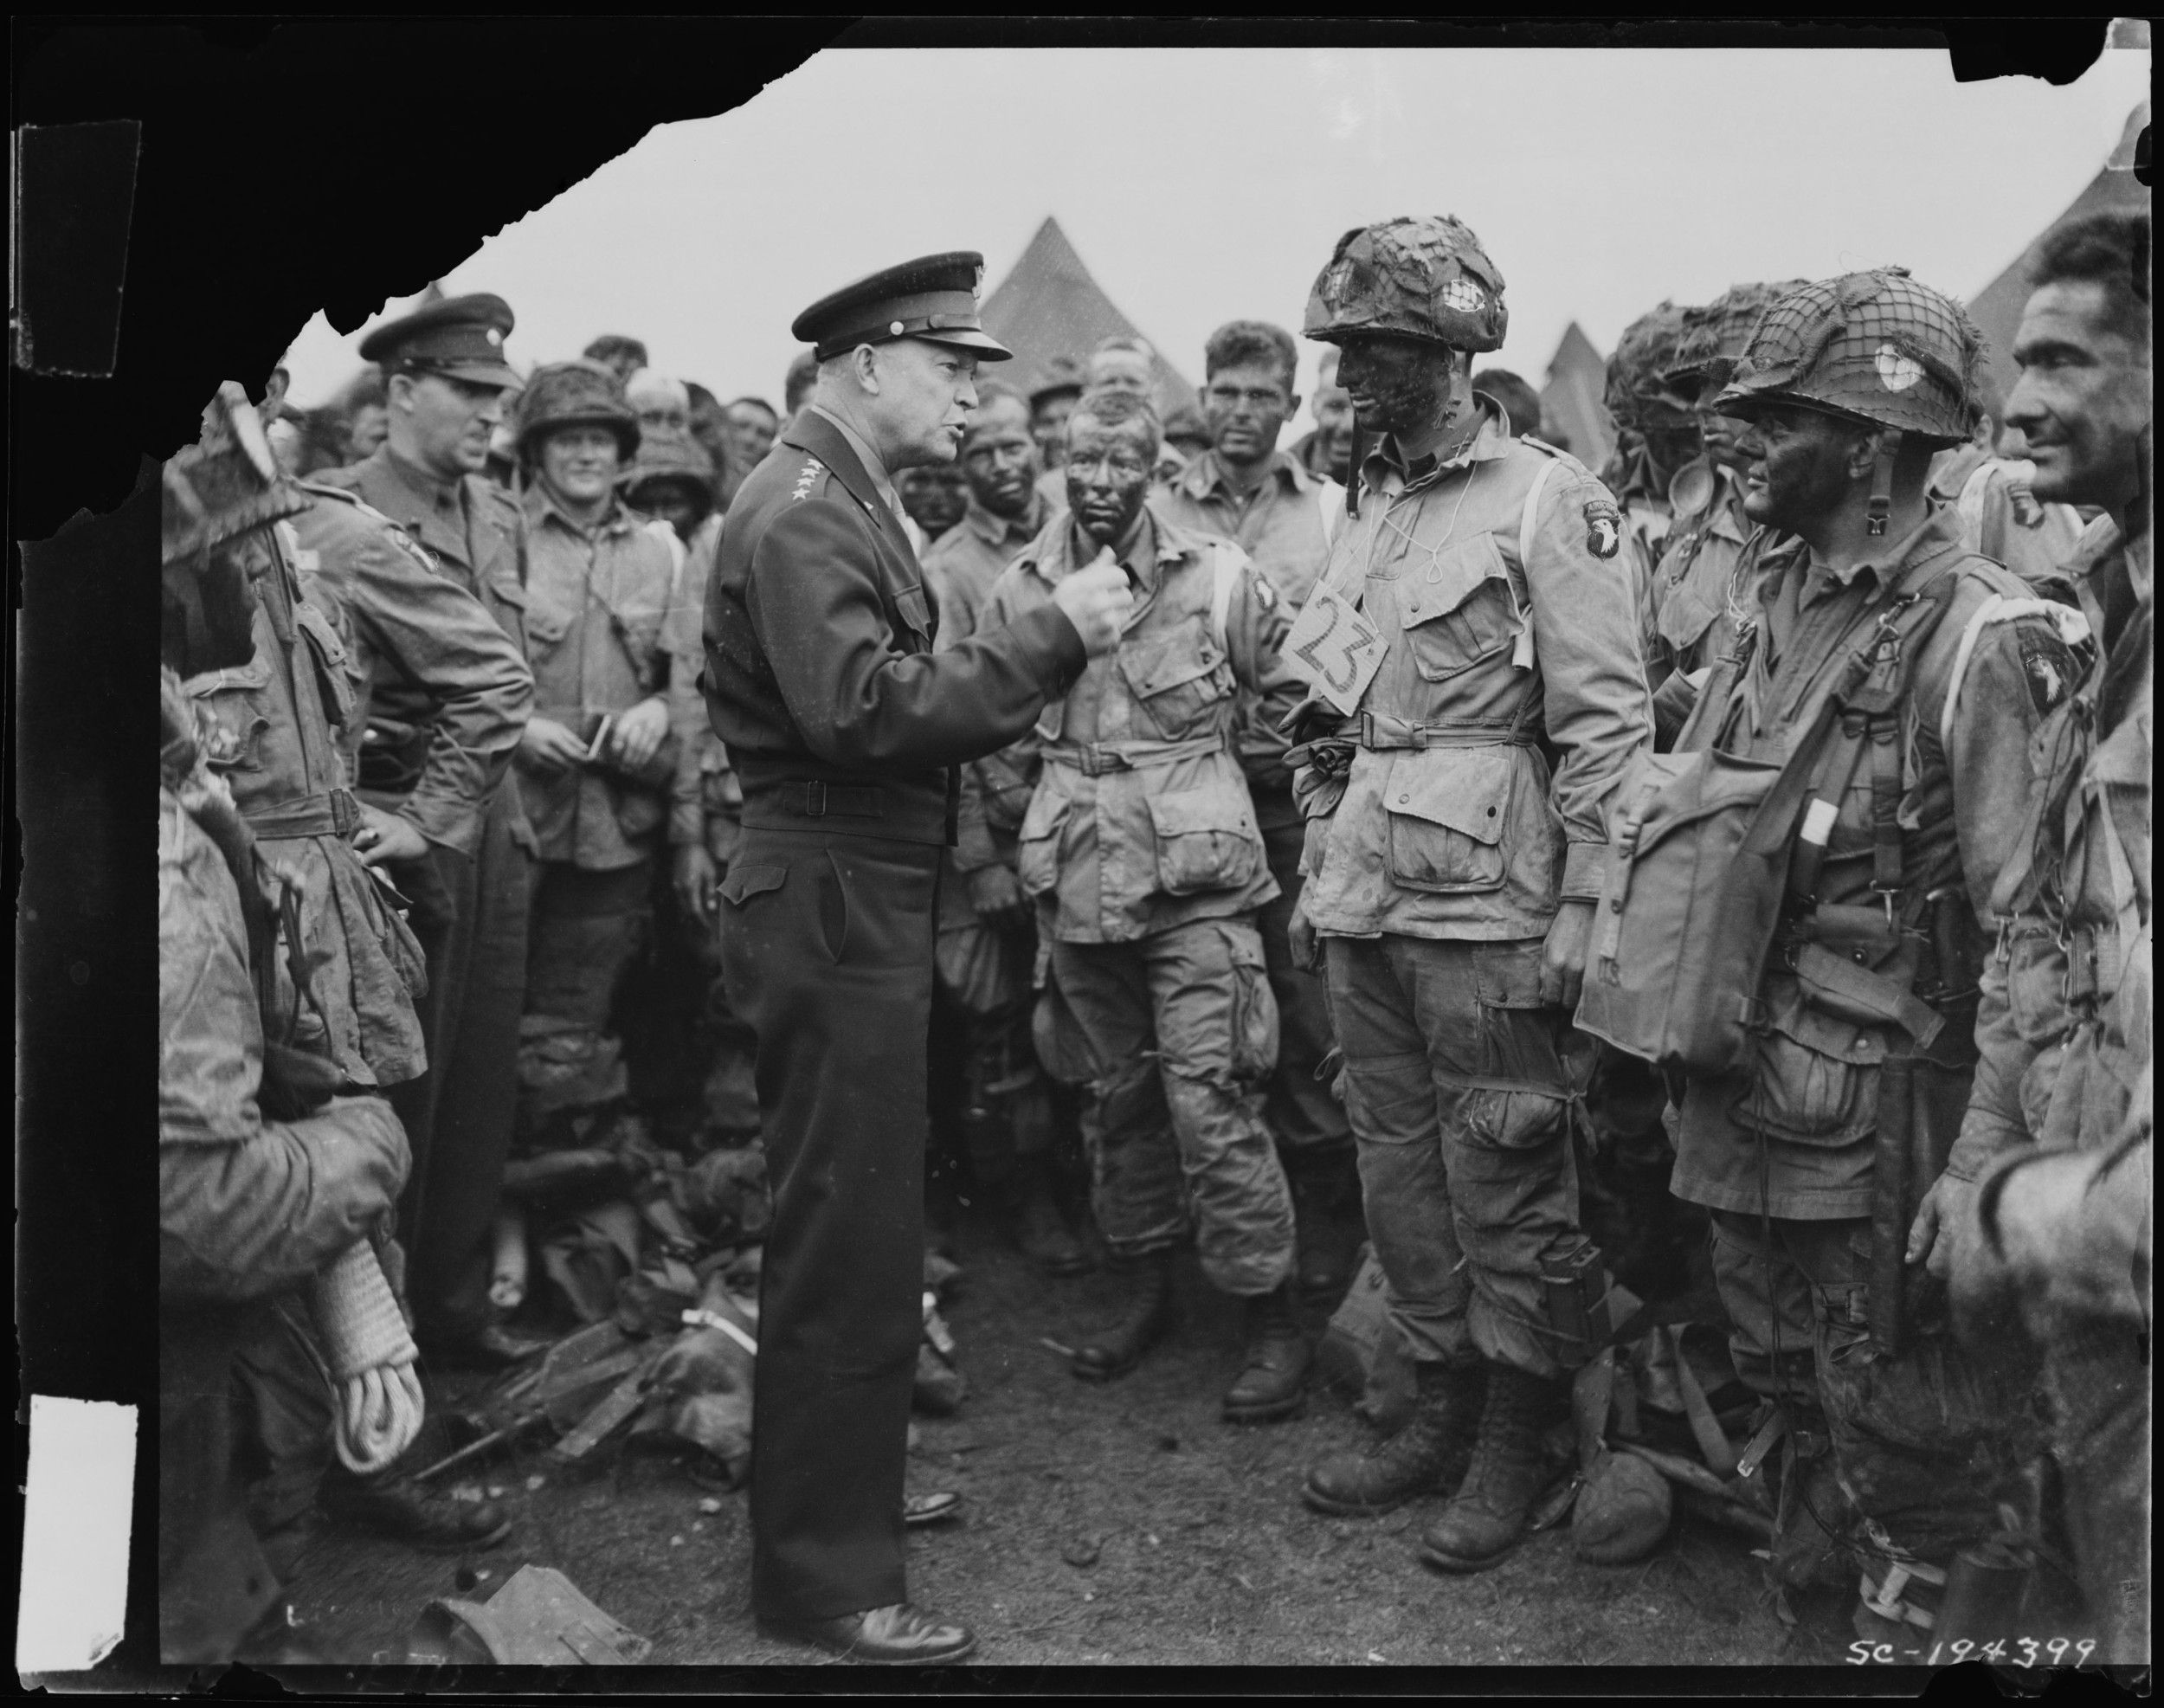 Gen. Eisenhower with the troops